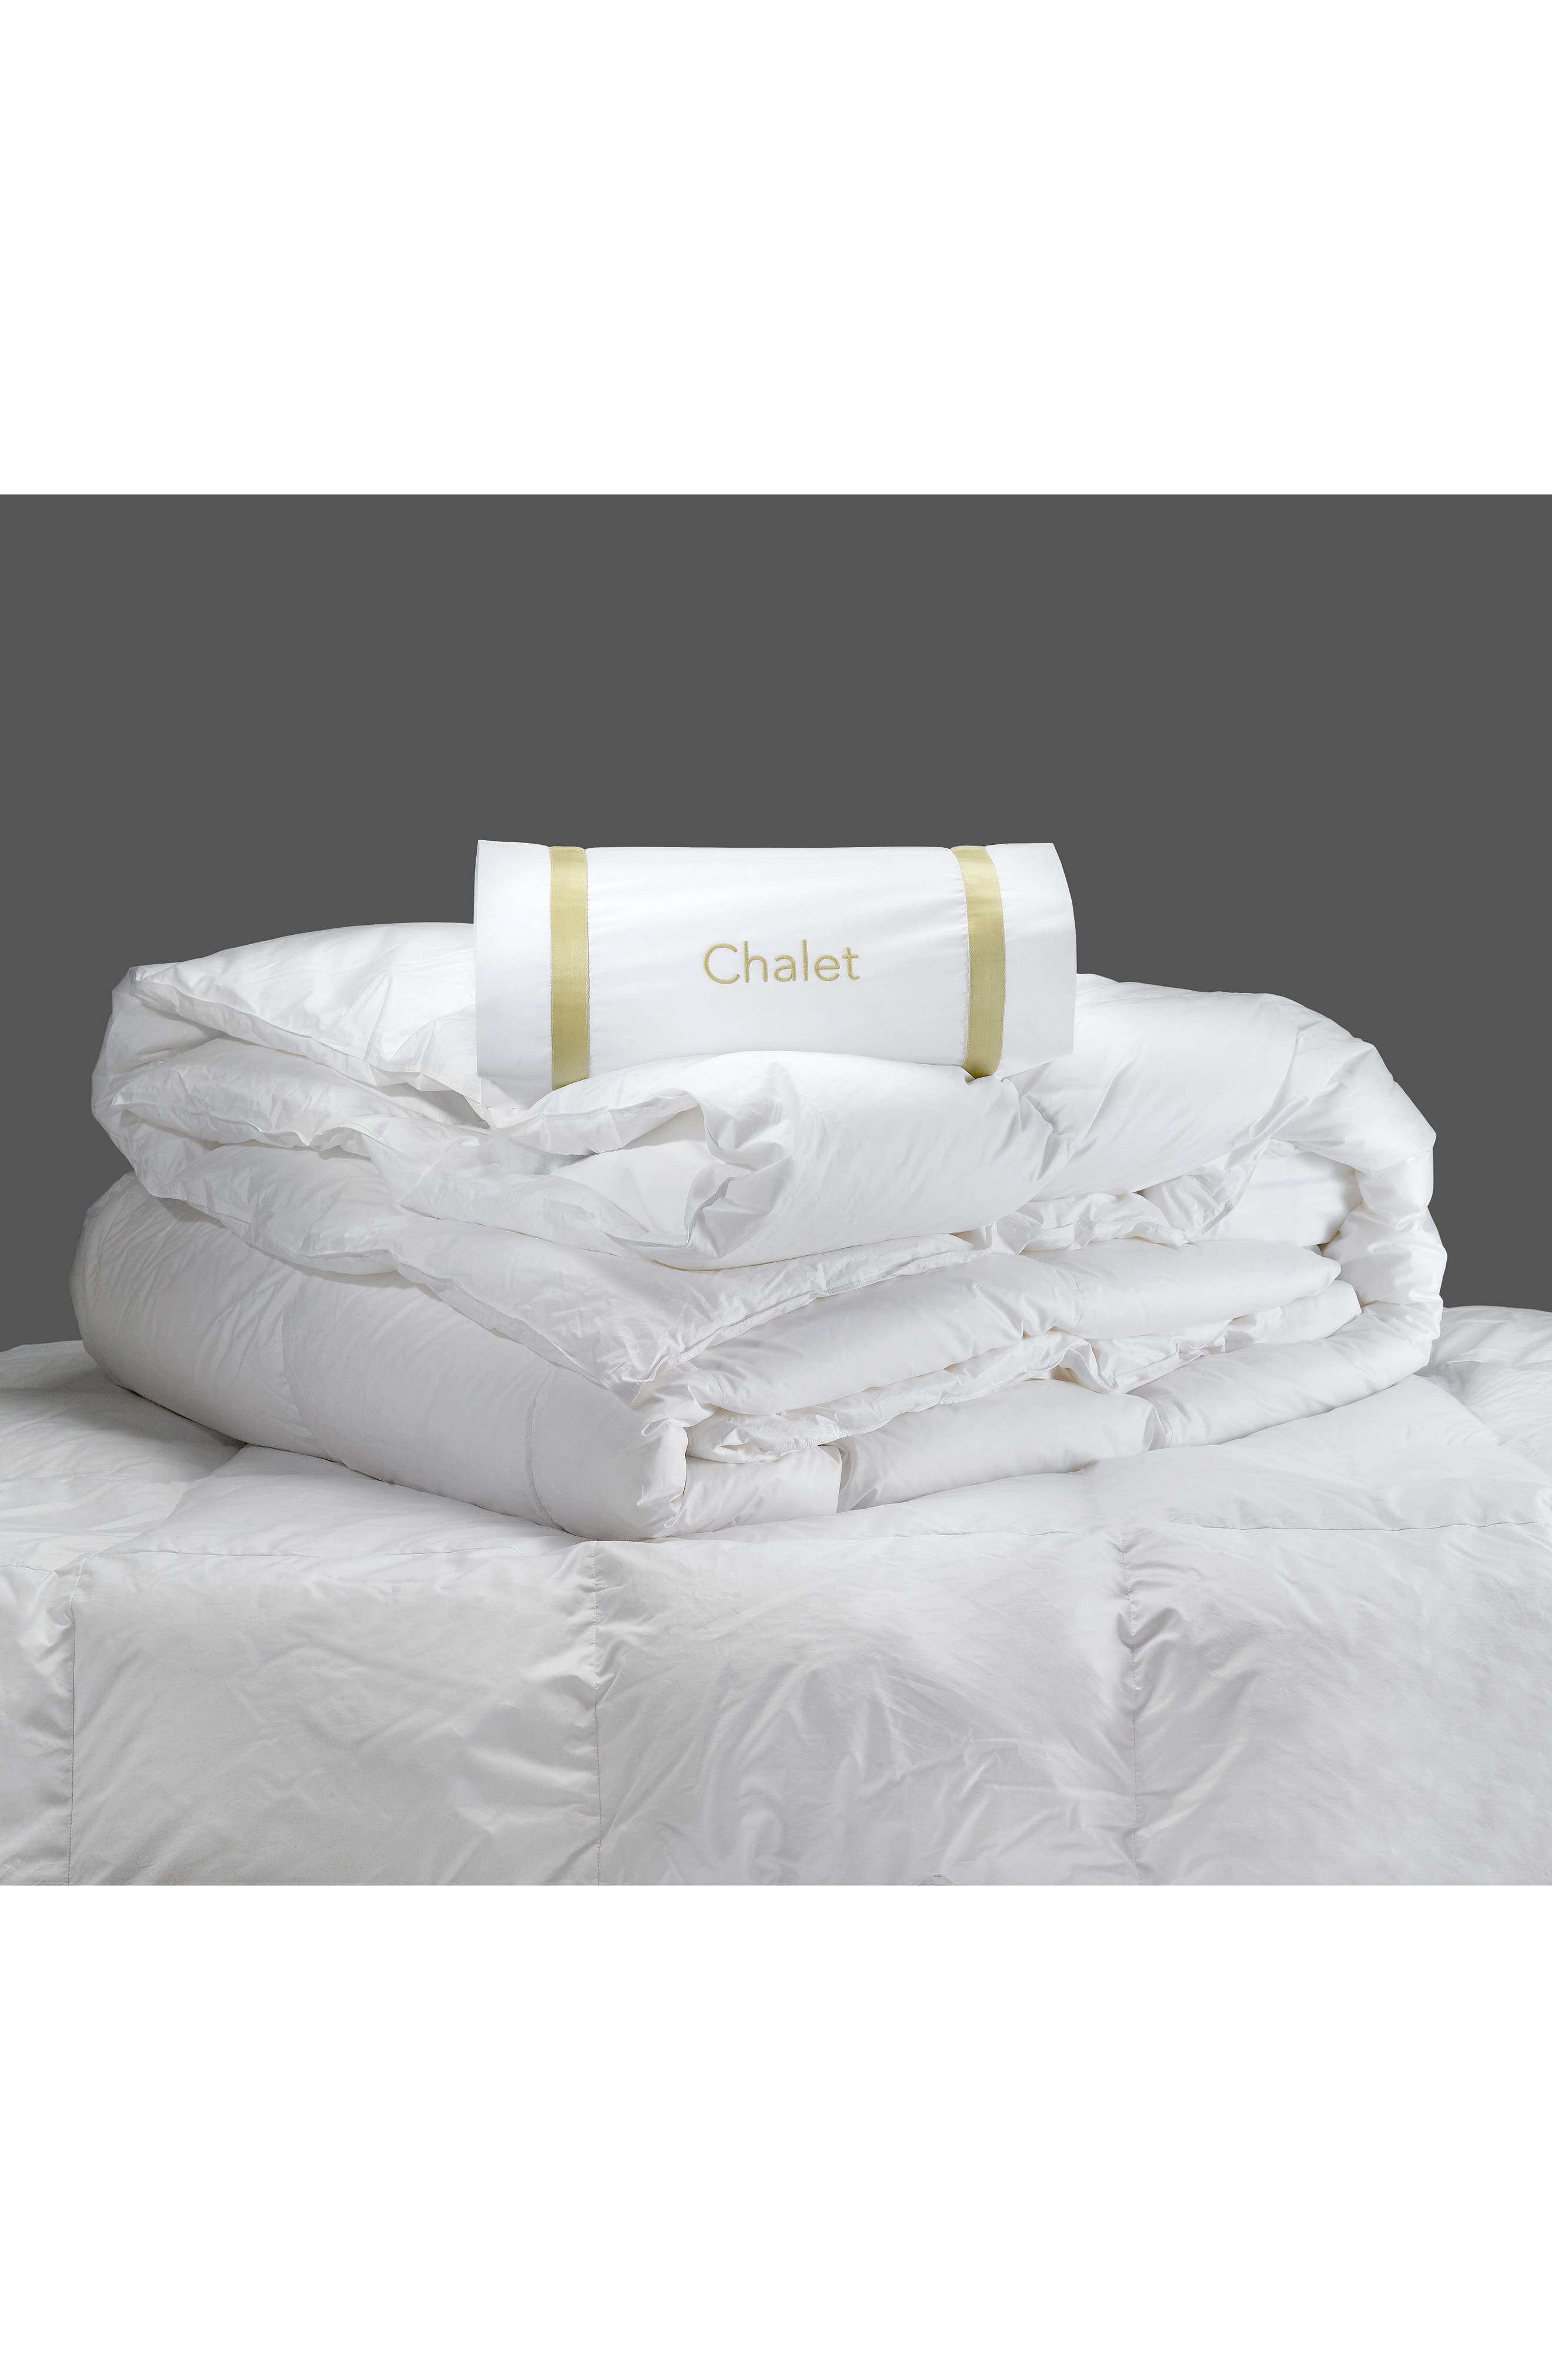 Chalet 800 Fill Power Summer Down 380 Thread Count Comforter,                             Alternate thumbnail 2, color,                             White